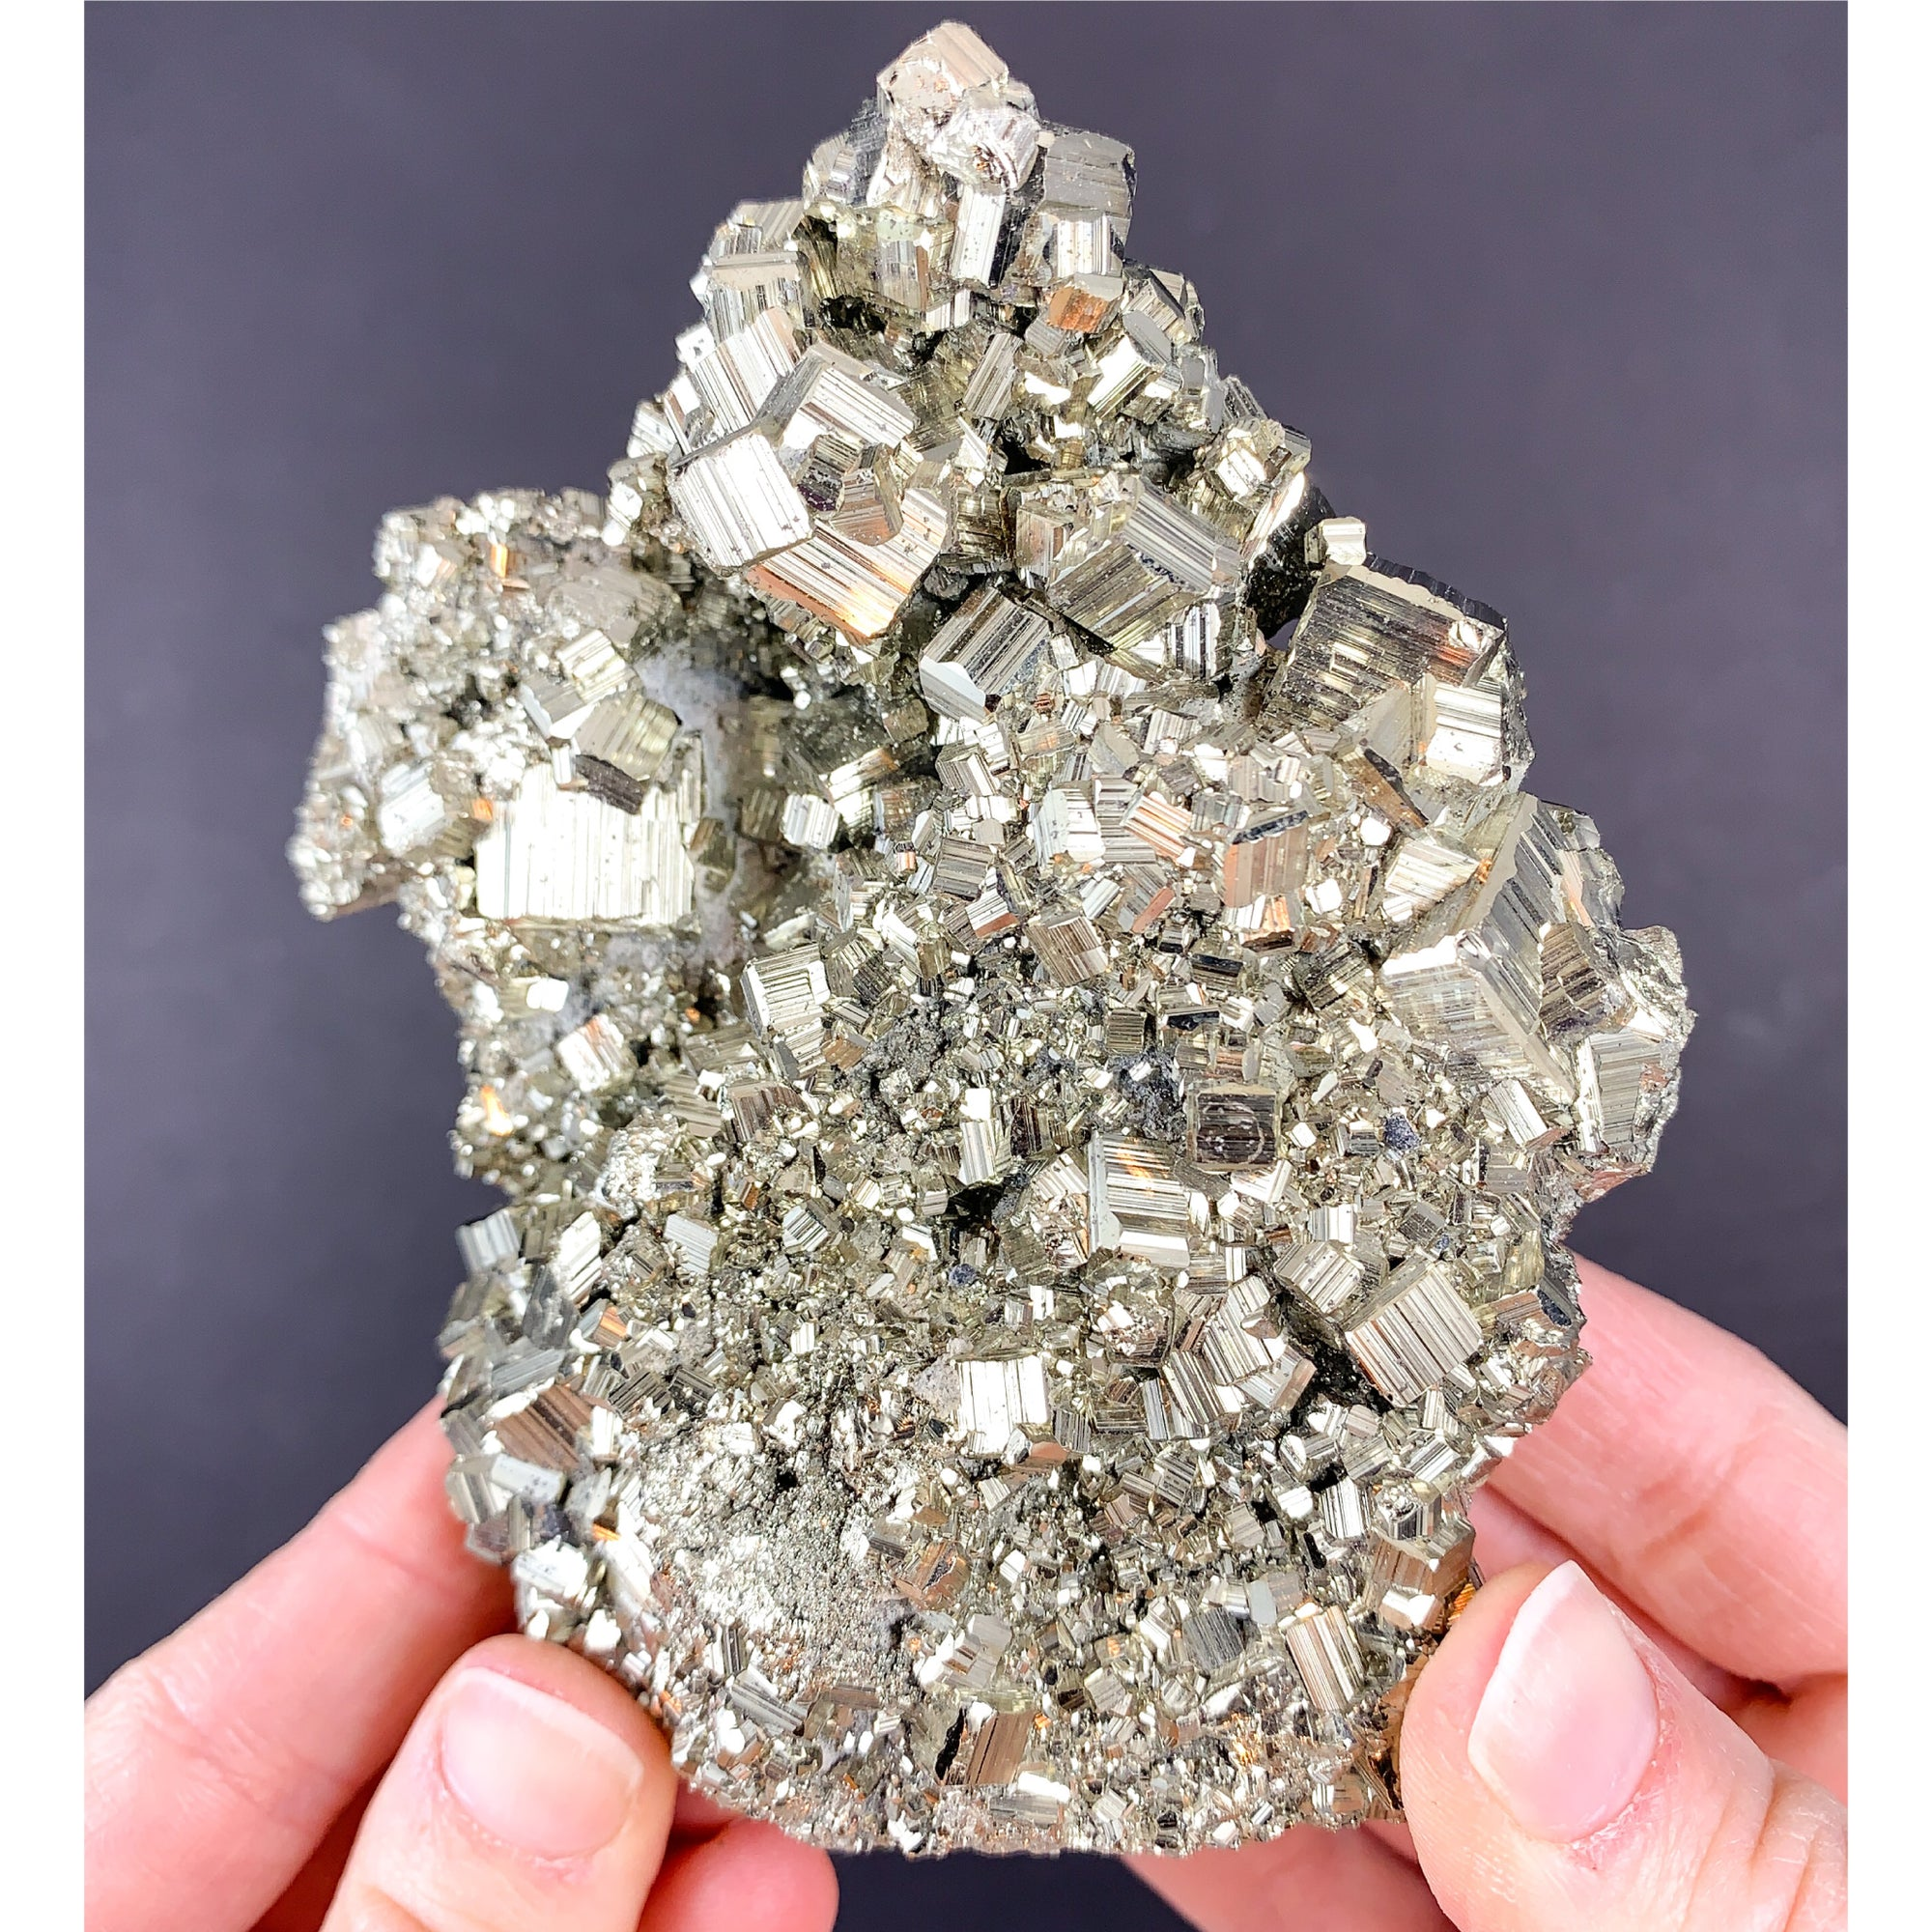 Large Pyrite Crystal Cluster